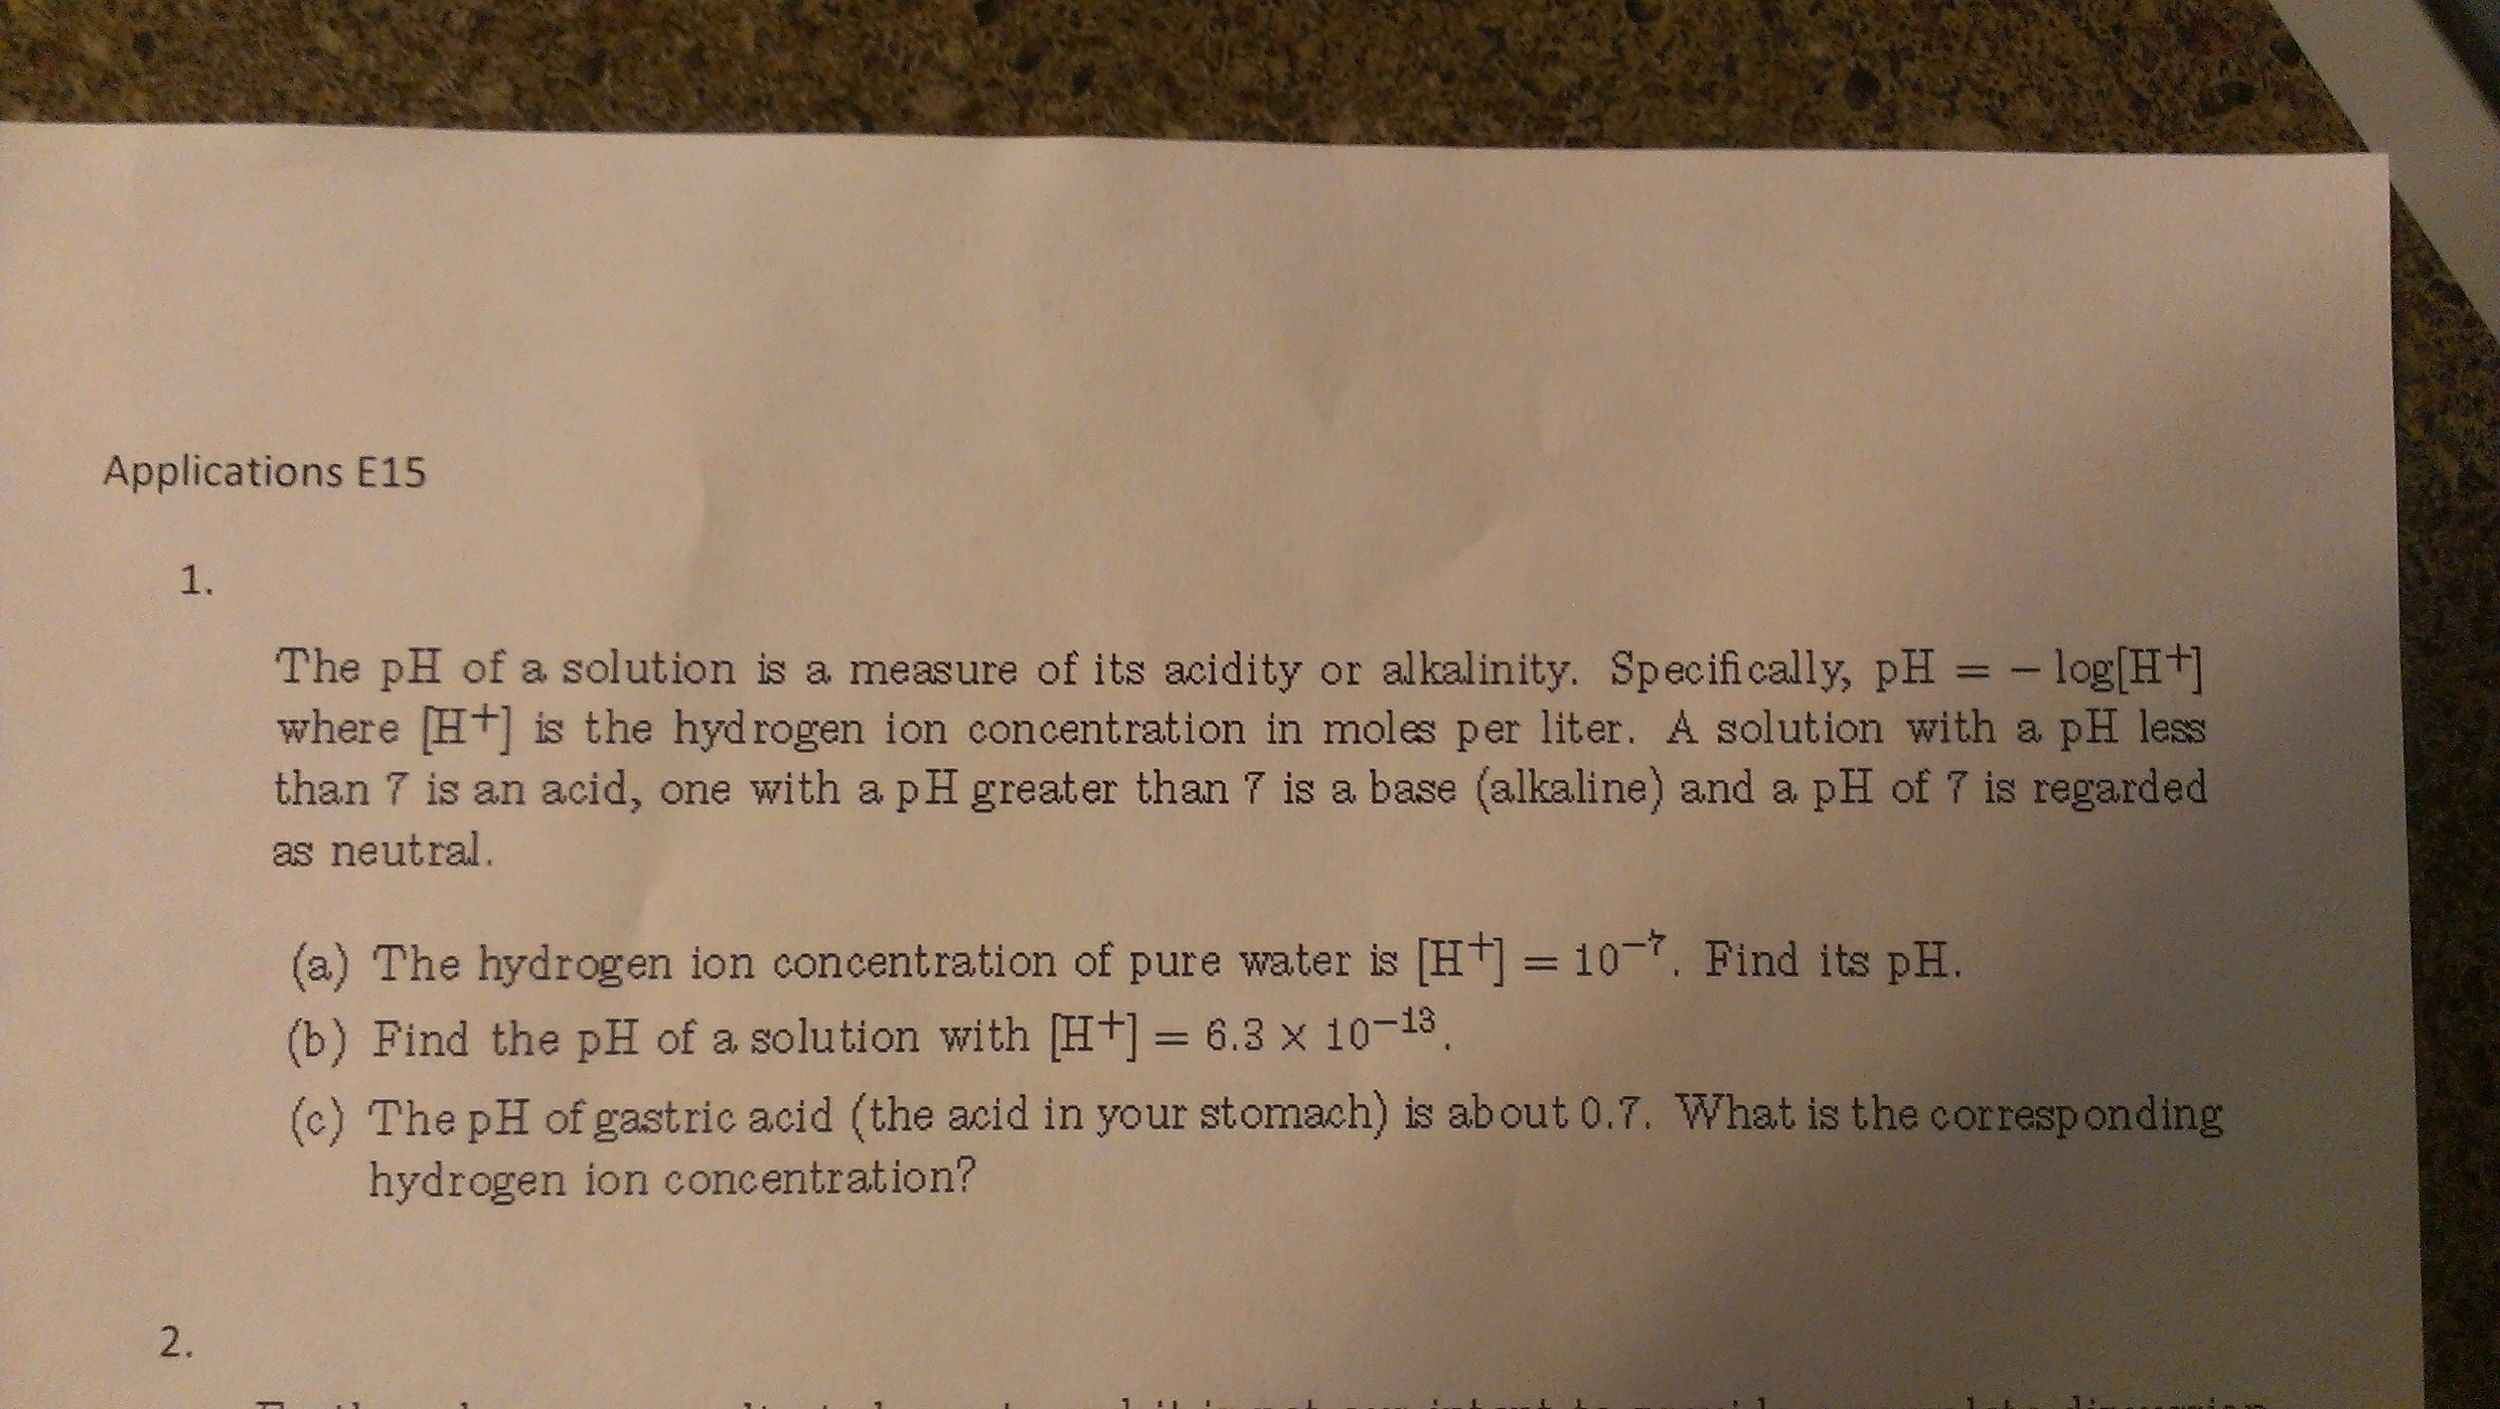 an introduction to the study of ph the measure of h a proton a concentration of a solution How do you calculate proton concentration [h+] follow 2 answers 2 is from the ph of a solution if you measure the ph of a given solution.